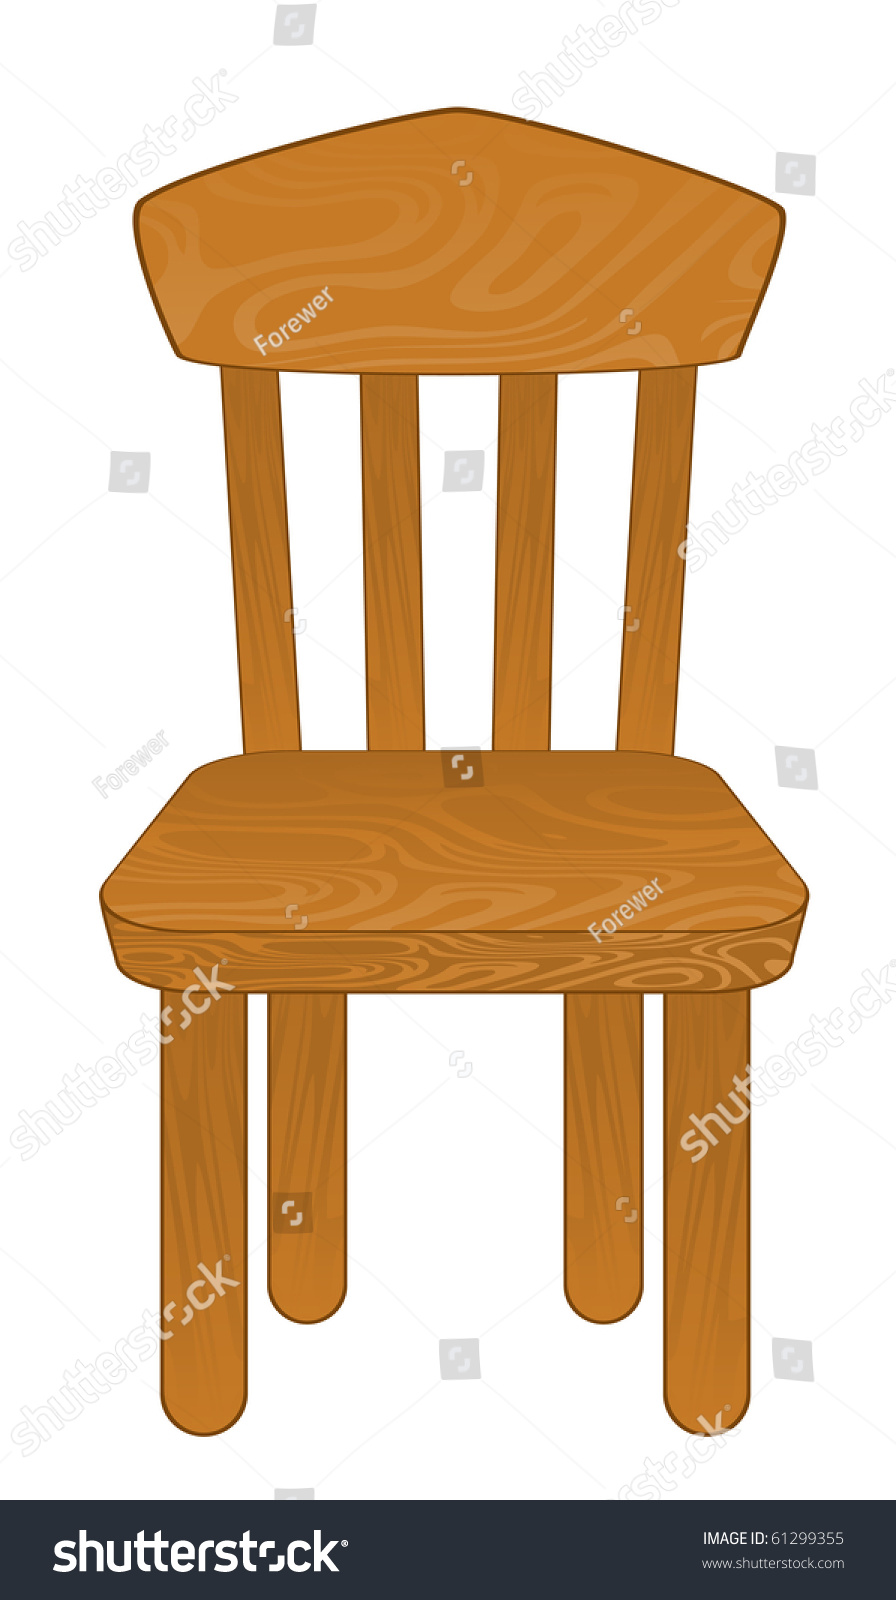 Chair Isolated Vector Illustration Stock Vector 61299355